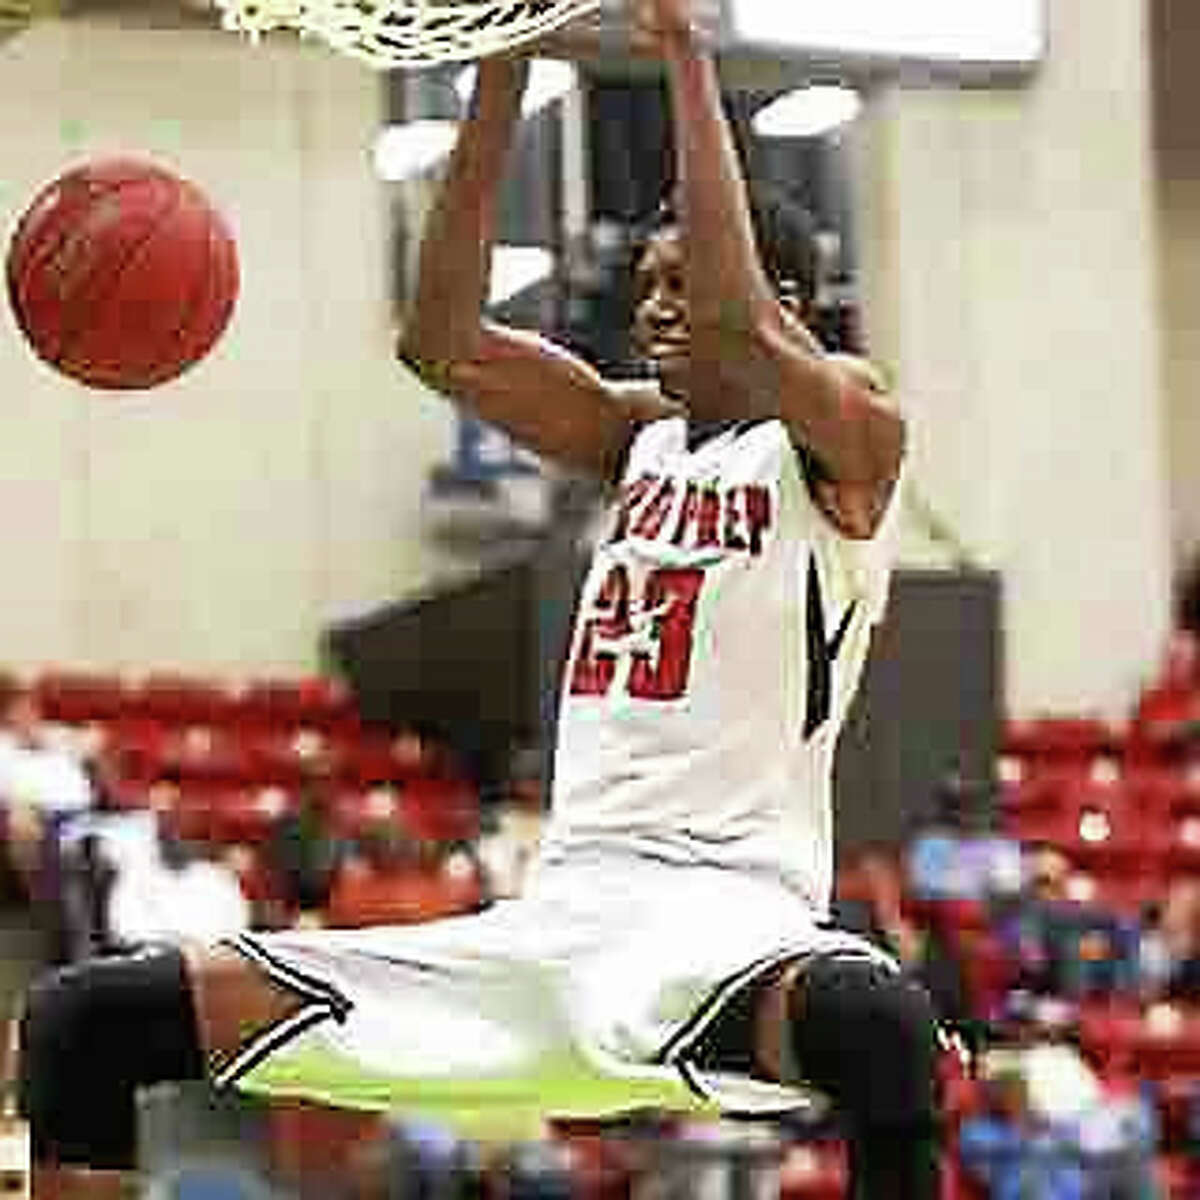 UConn commit Juwan Durham has now torn the ACL in both knees.